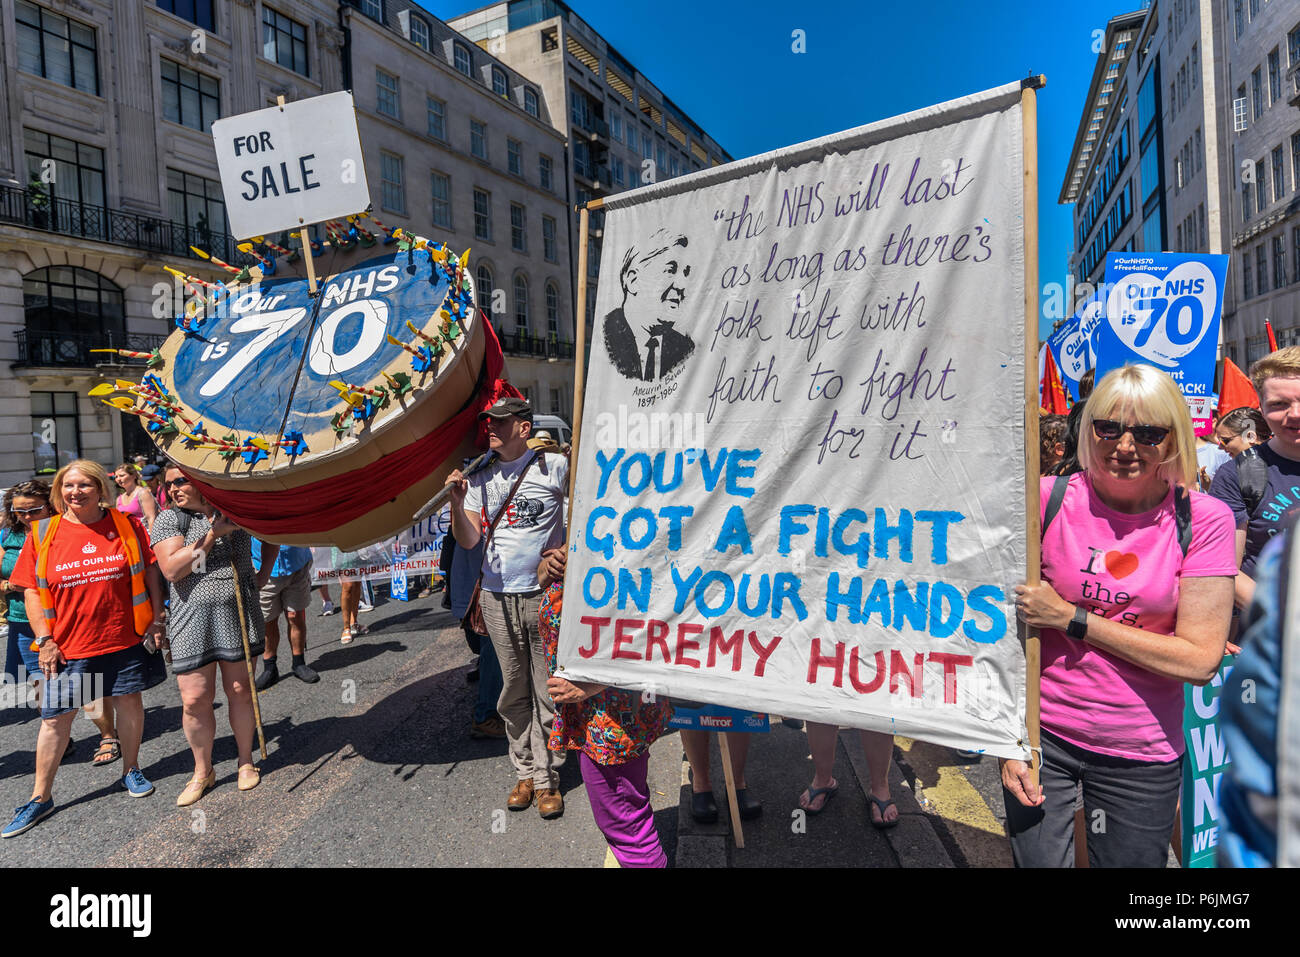 June 30, 2018 - London, UK. 30th June 2018. A huge birthday cake celebrating the NHS at 70 with the message 'FOR SALE' next to a banner with a quotation attributed to Aneurin Bevan as thousands wait to march through London from the BBC to a rally near Downing St to celebrate 70 years of the NHS, and to support its dedicated workers in demanding a publicly owned NHS that is free for all with proper funding and proper staffing and providing a world class services for every community. The protest, organised by the the People's Assembly, Health Campaigns Together, Trades Union Congress, Unison, - Stock Image